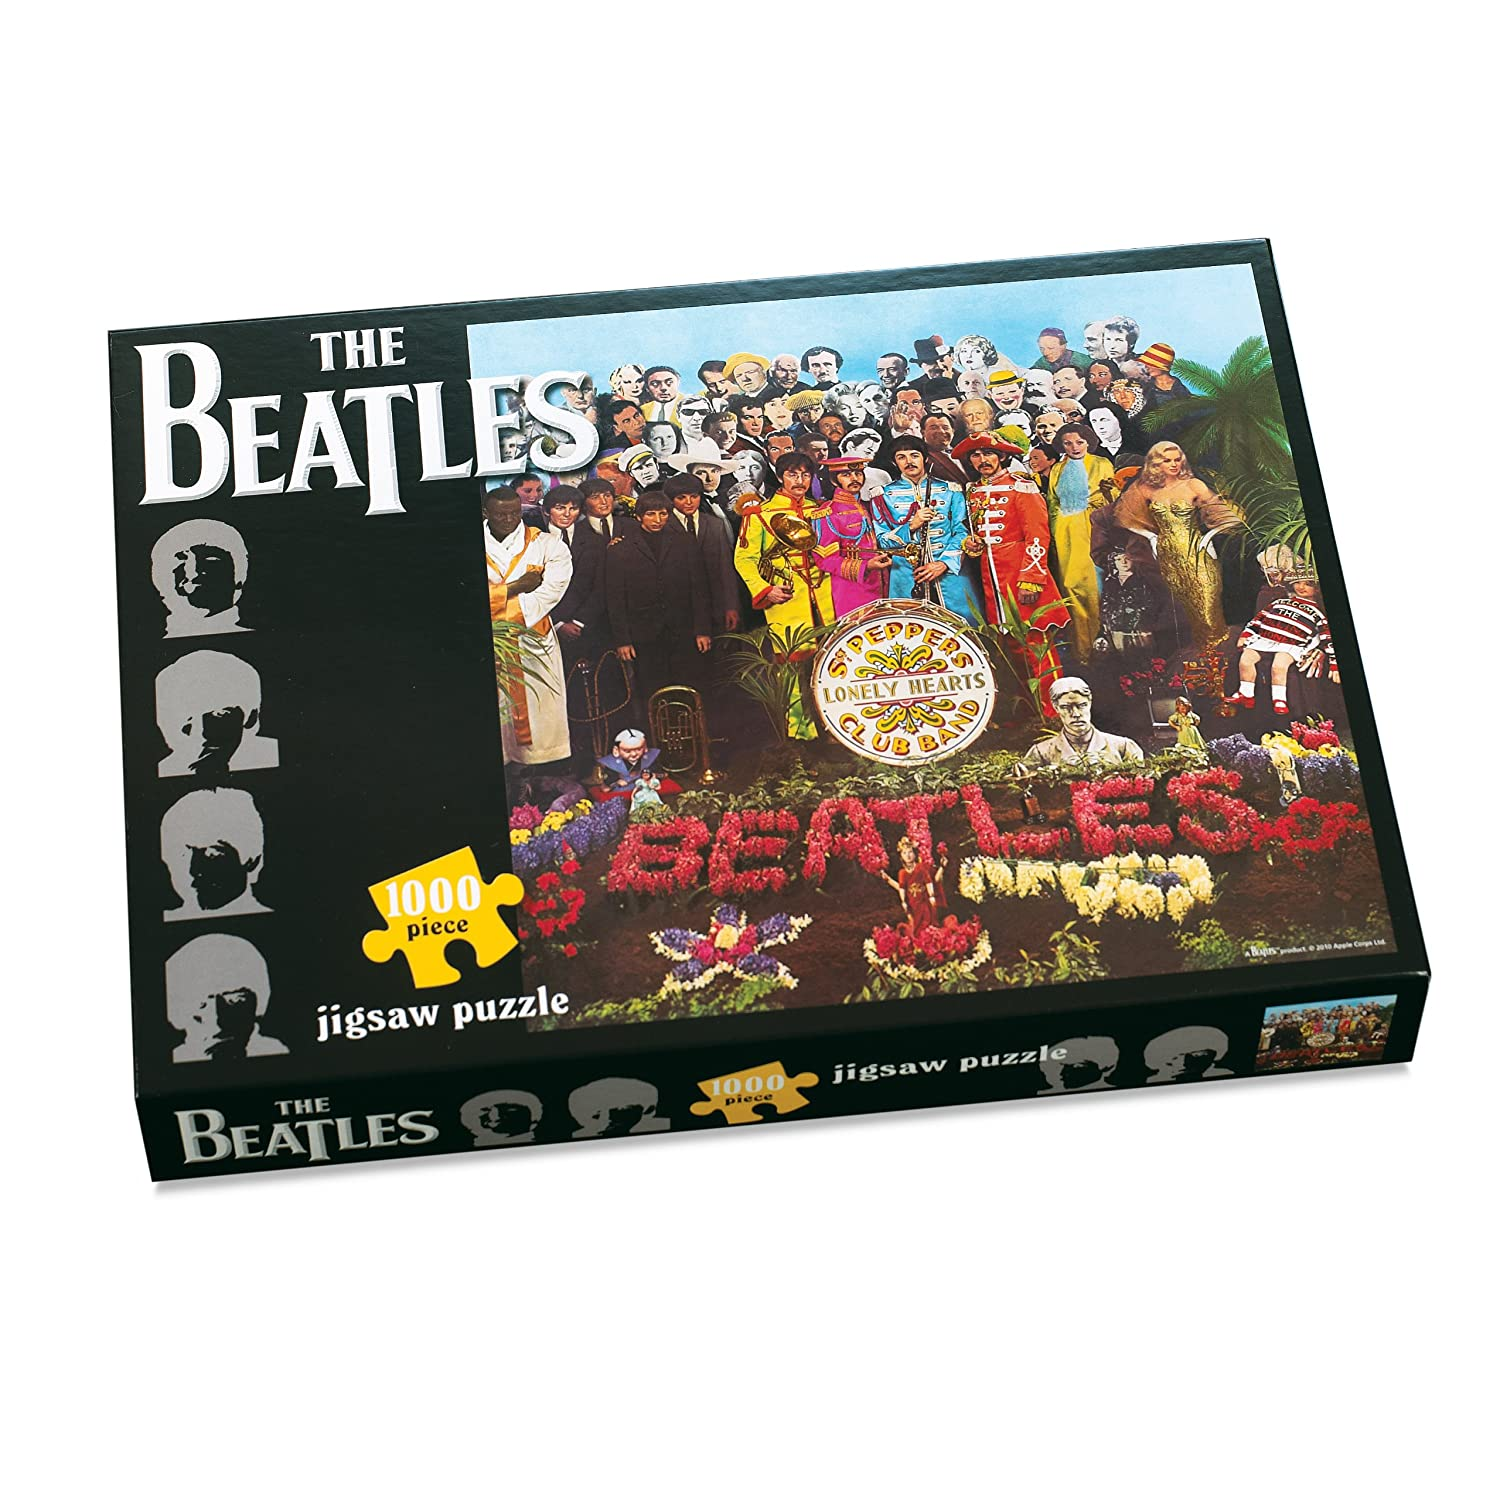 The Beatles 1000 Piece Jigsaw Puzzle - Sgt Peppers